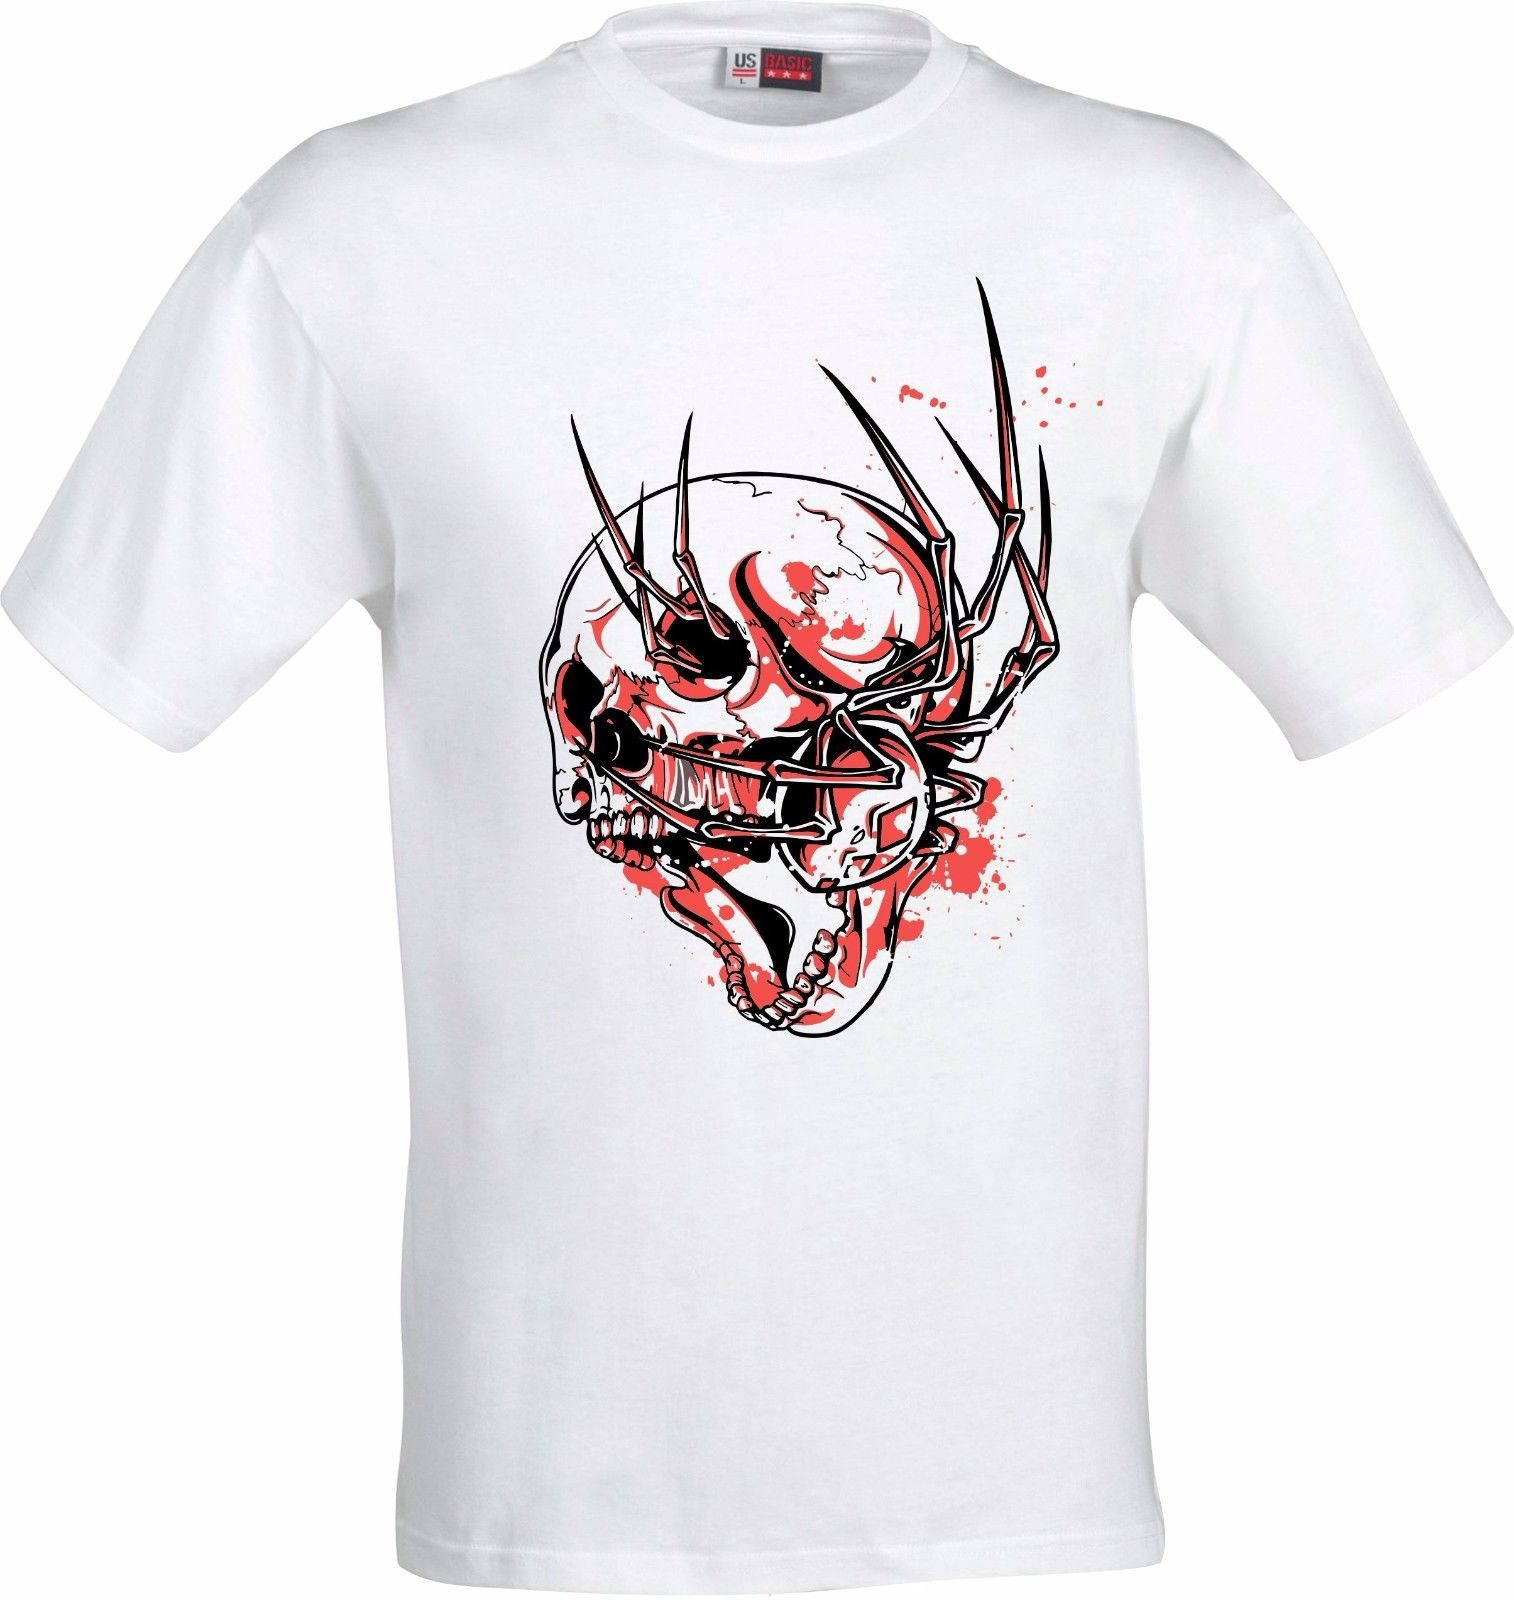 Spider In Skull Retro Gothic Full Color Sublimation T